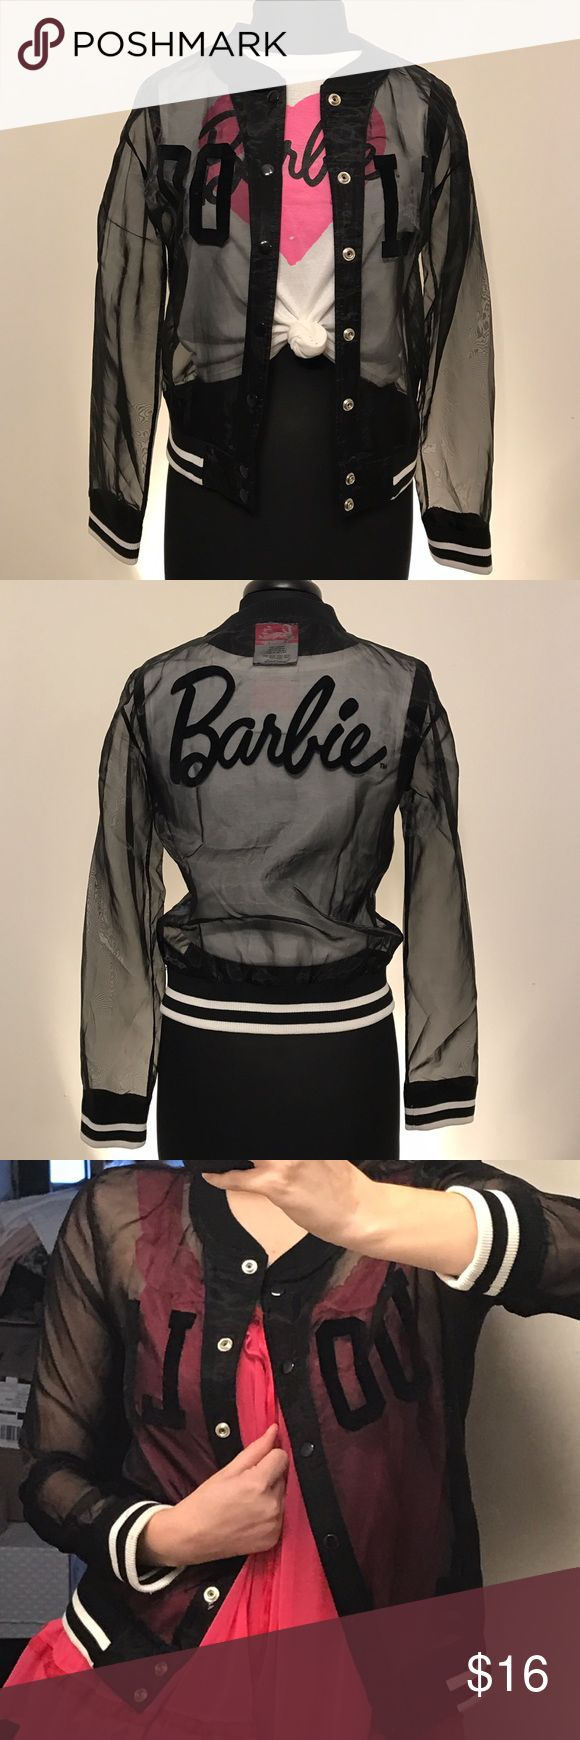 """BARBIE Sheer Black Varsity Jacket BARBIE Sheer Black Varsity Jacket with white stripes along arms and waist. The front features the word """"DOLL"""" in capital letters. On the back, BARBIE is spelled out using cursive handwritting. ©2014 Mattel Inc. Barbie Jackets & Coats"""